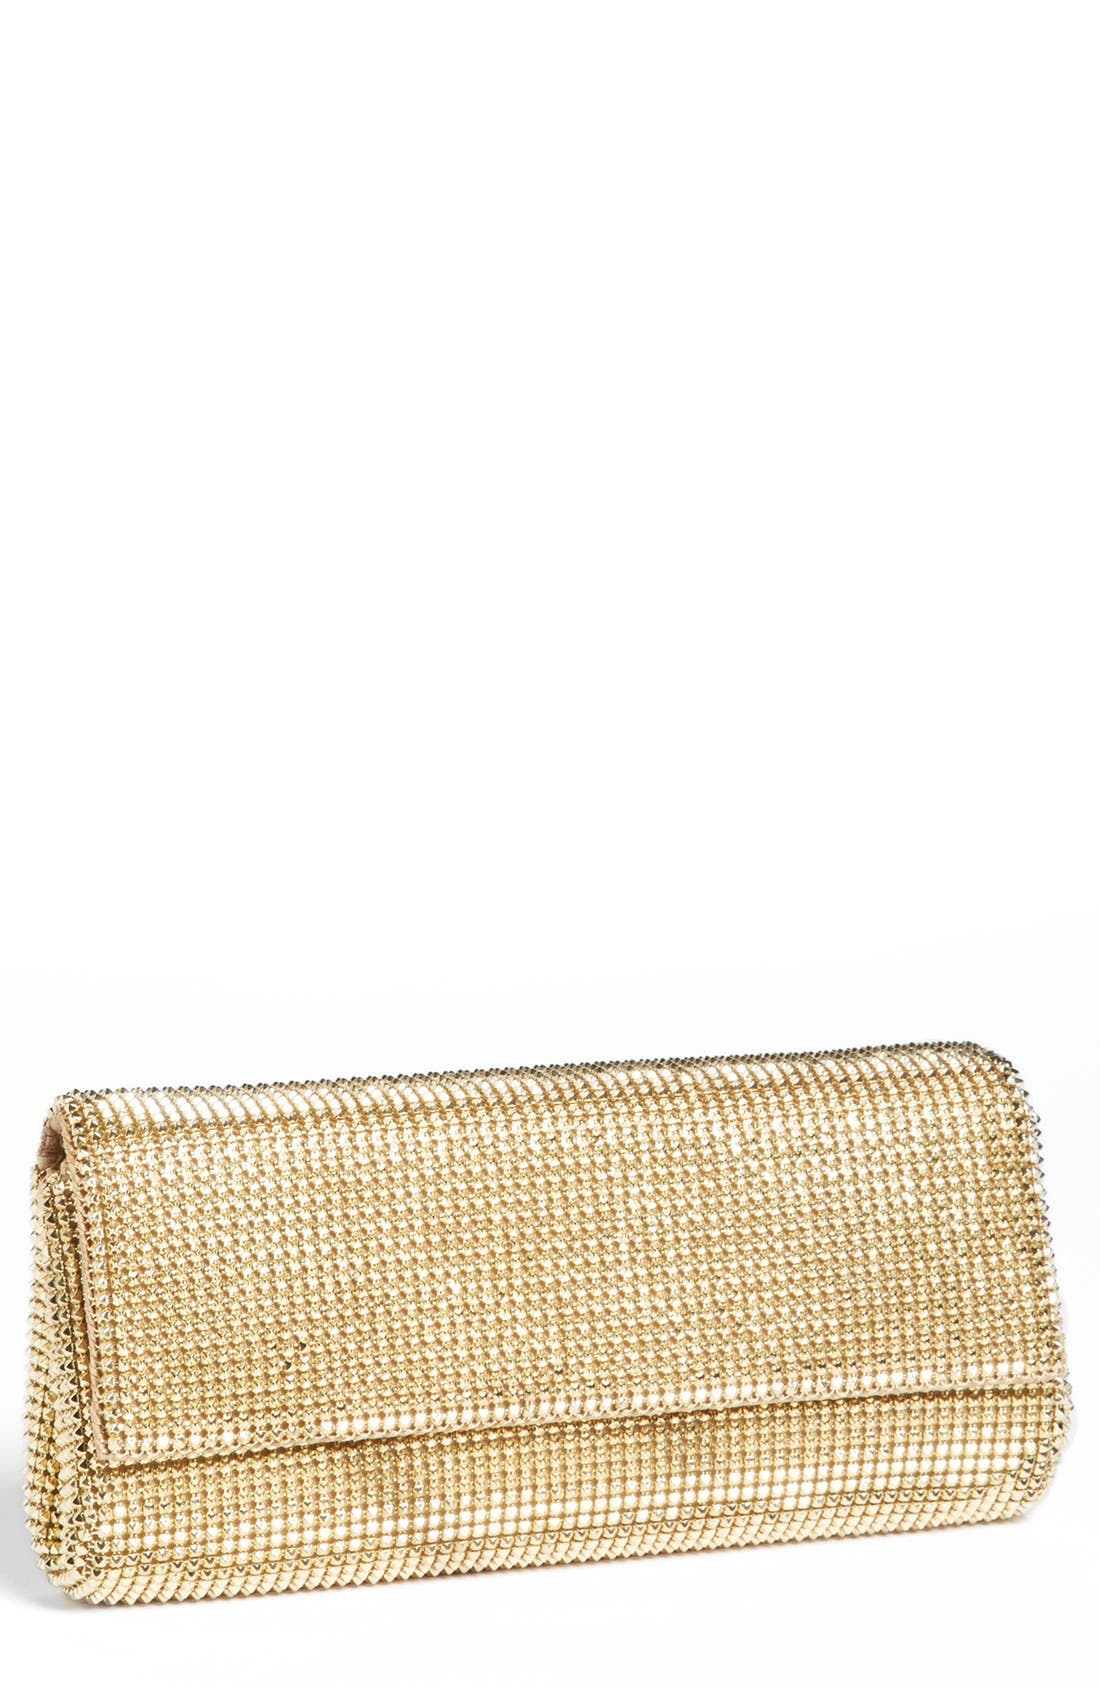 Alternate Image 1 Selected - Whiting & Davis 'Pyramid' Mesh Clutch